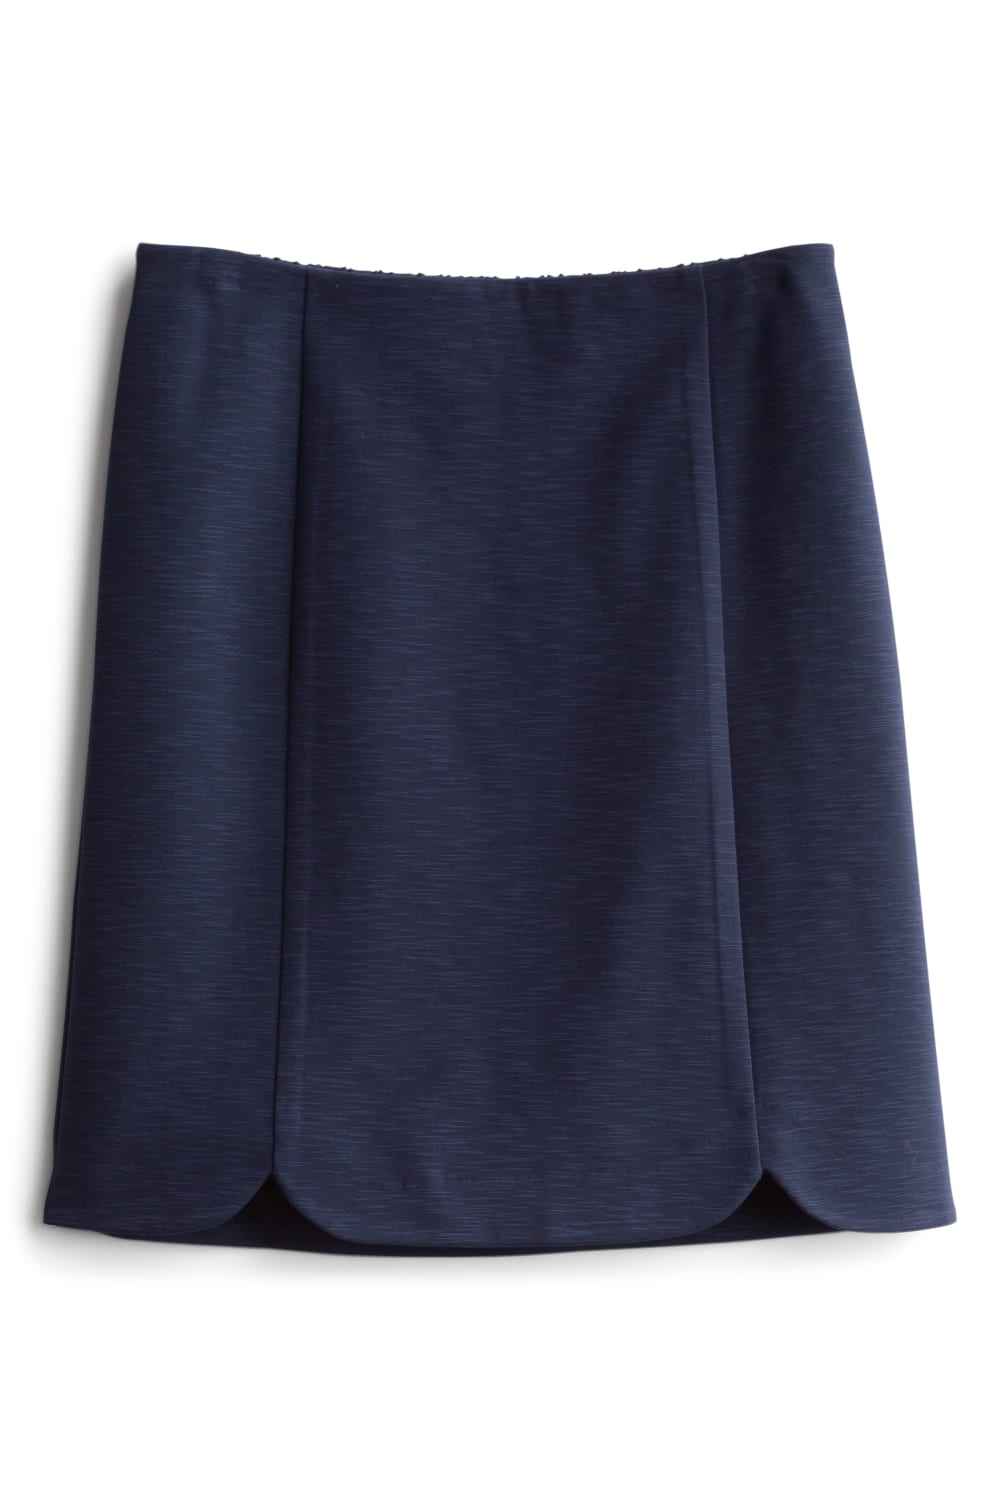 SKIES ARE BLUE Louise Knit Skirt SIZE- XS $48.00